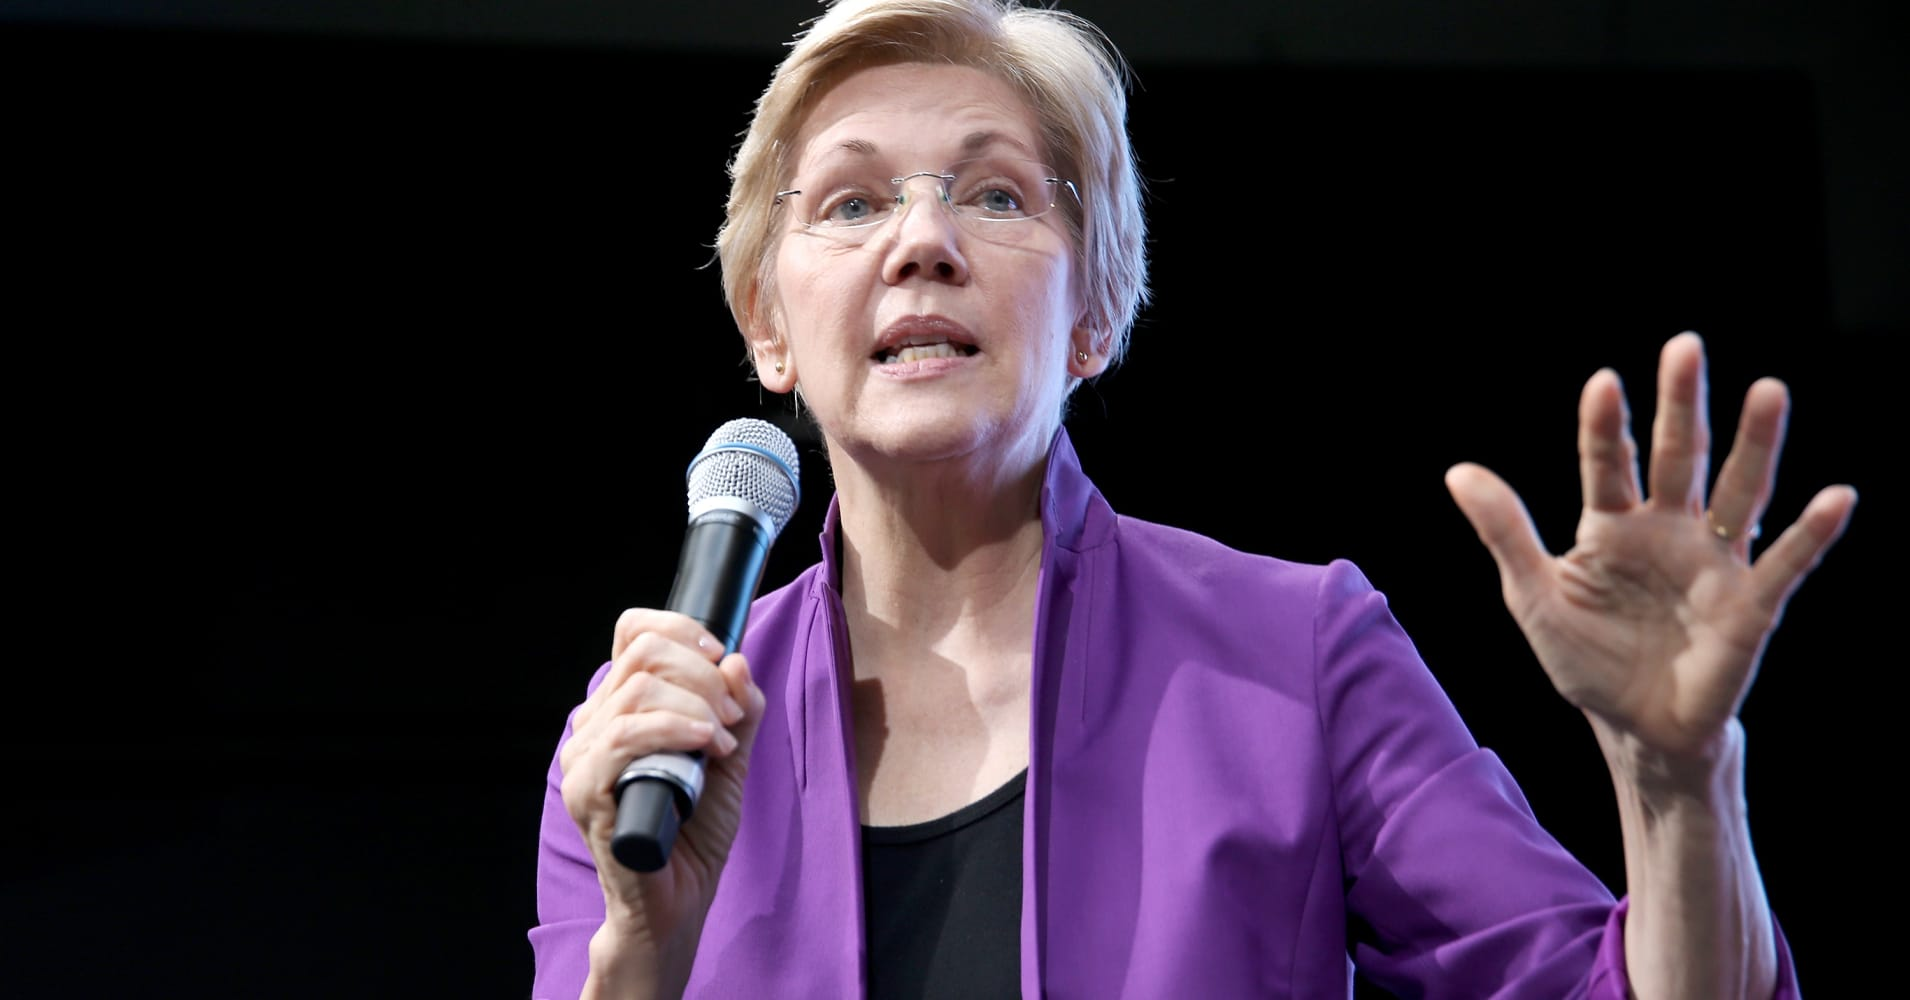 Watch: Sen. Elizabeth Warren discusses the financial crisis 10 years after Lehman Brothers collapse